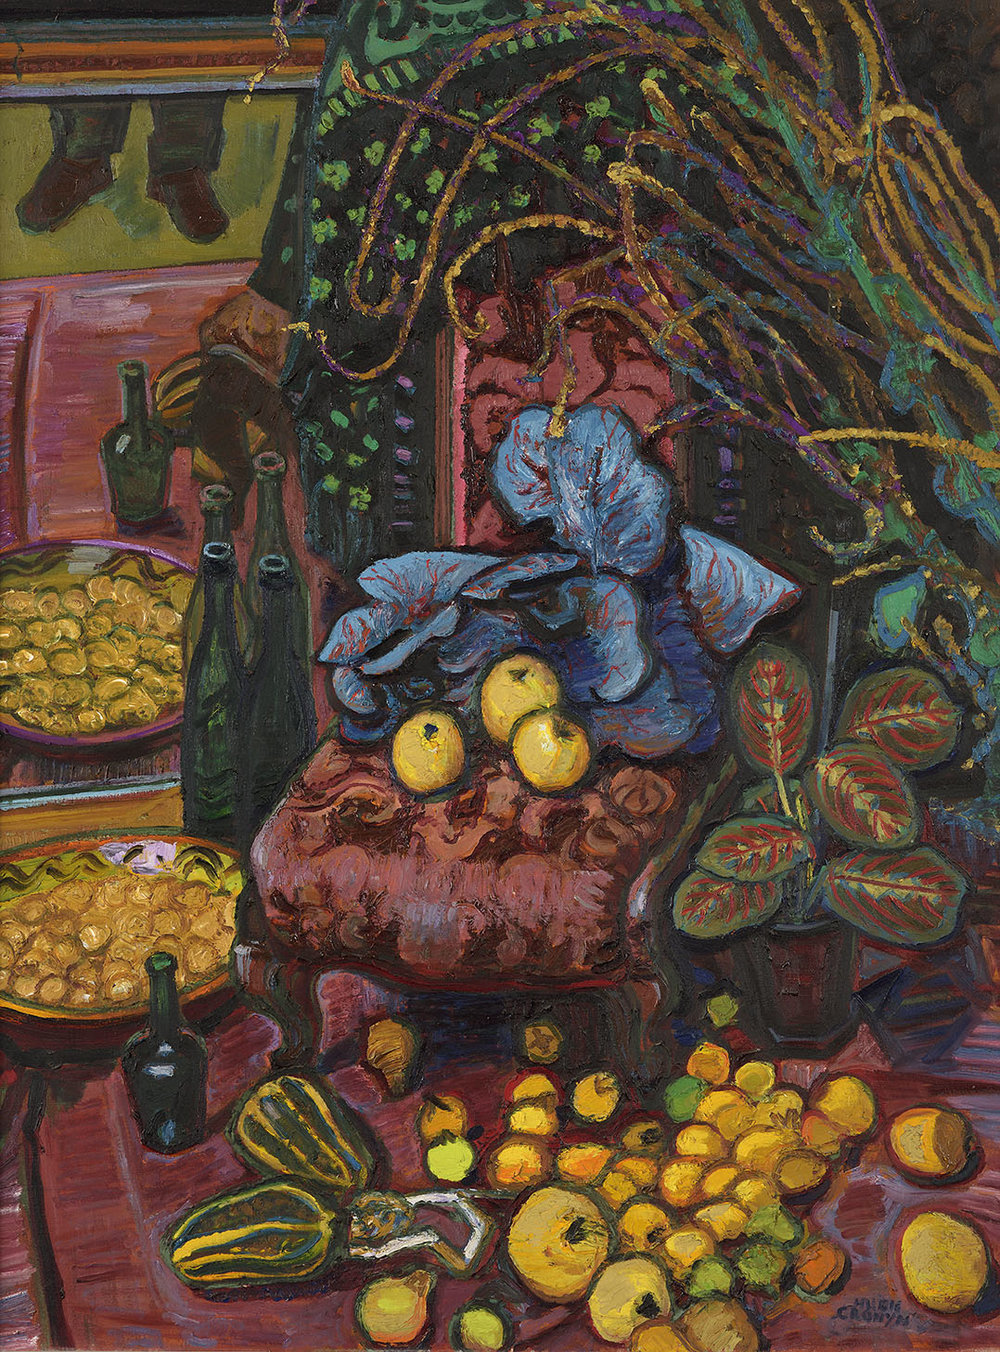 Hugh Verschoyle Cronyn FRSA (1905-1996)    Chair and Fruit,  1972, Oil on canvas, 40 x 30 in, Signed  [CAS 20] Acquired 1972